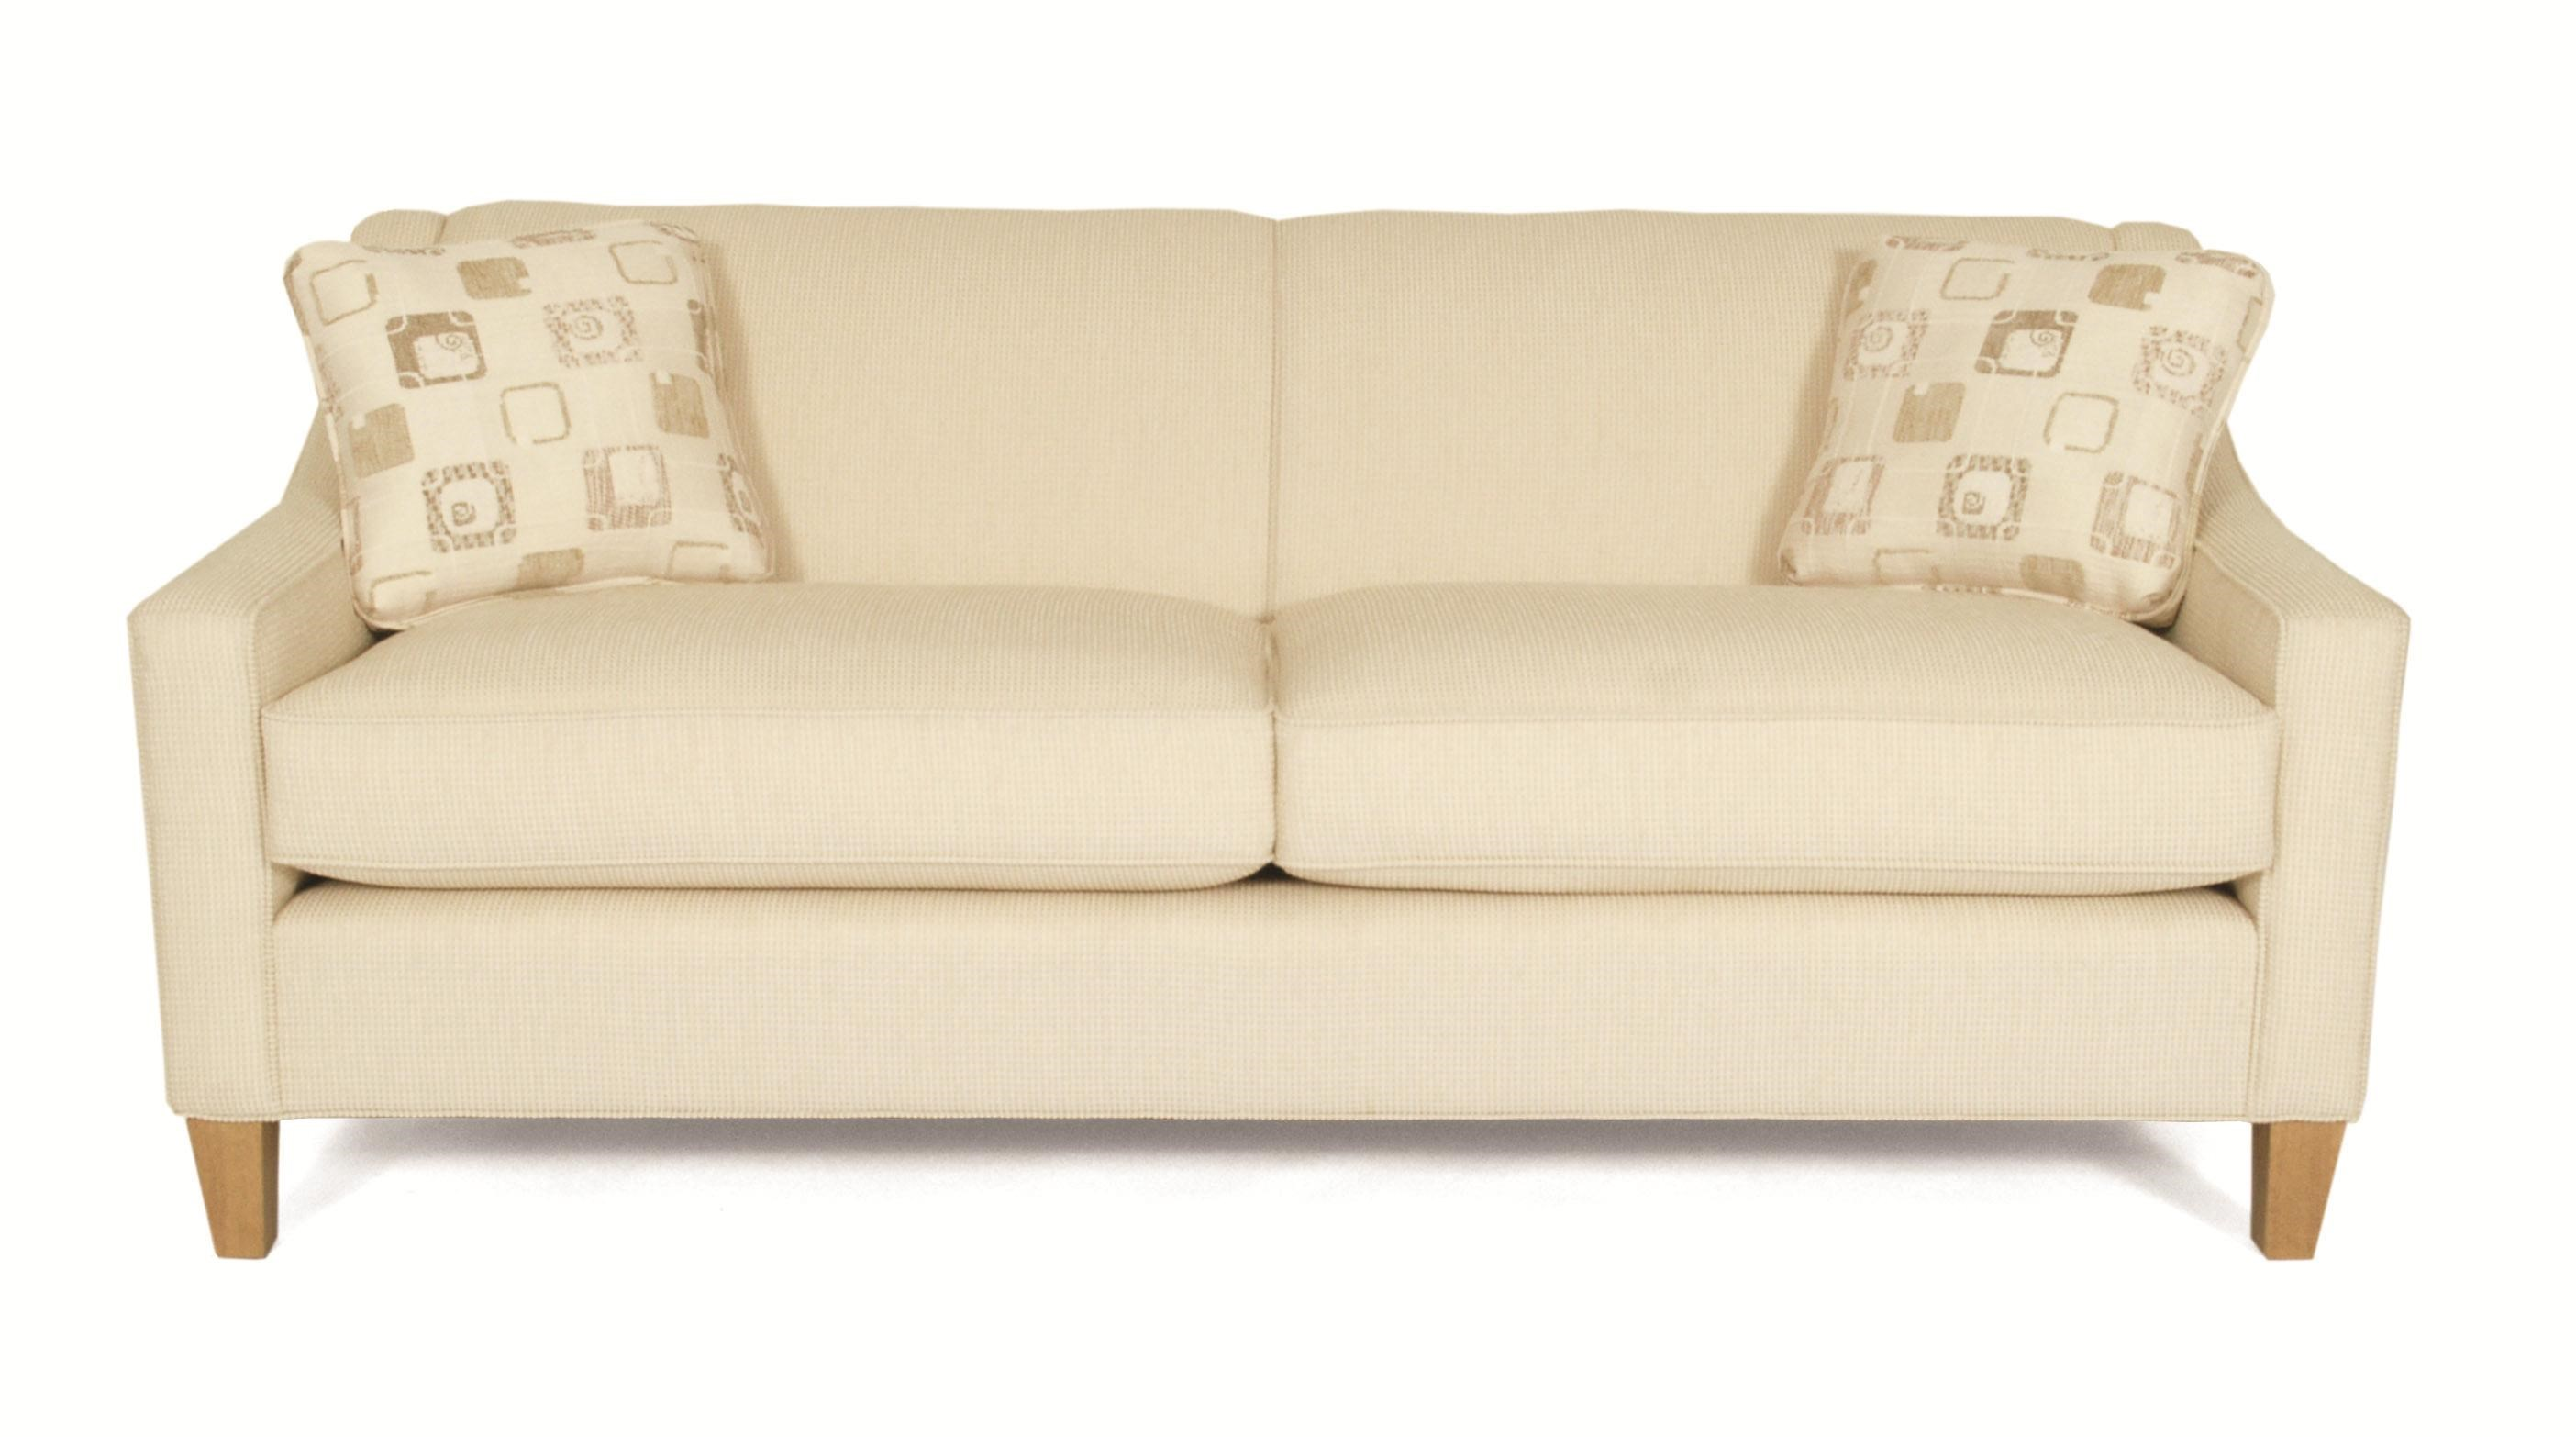 Blake 716 Contemporary Stationary Sofa With Track Arms And Welted Seat  Cushions By Norwalk